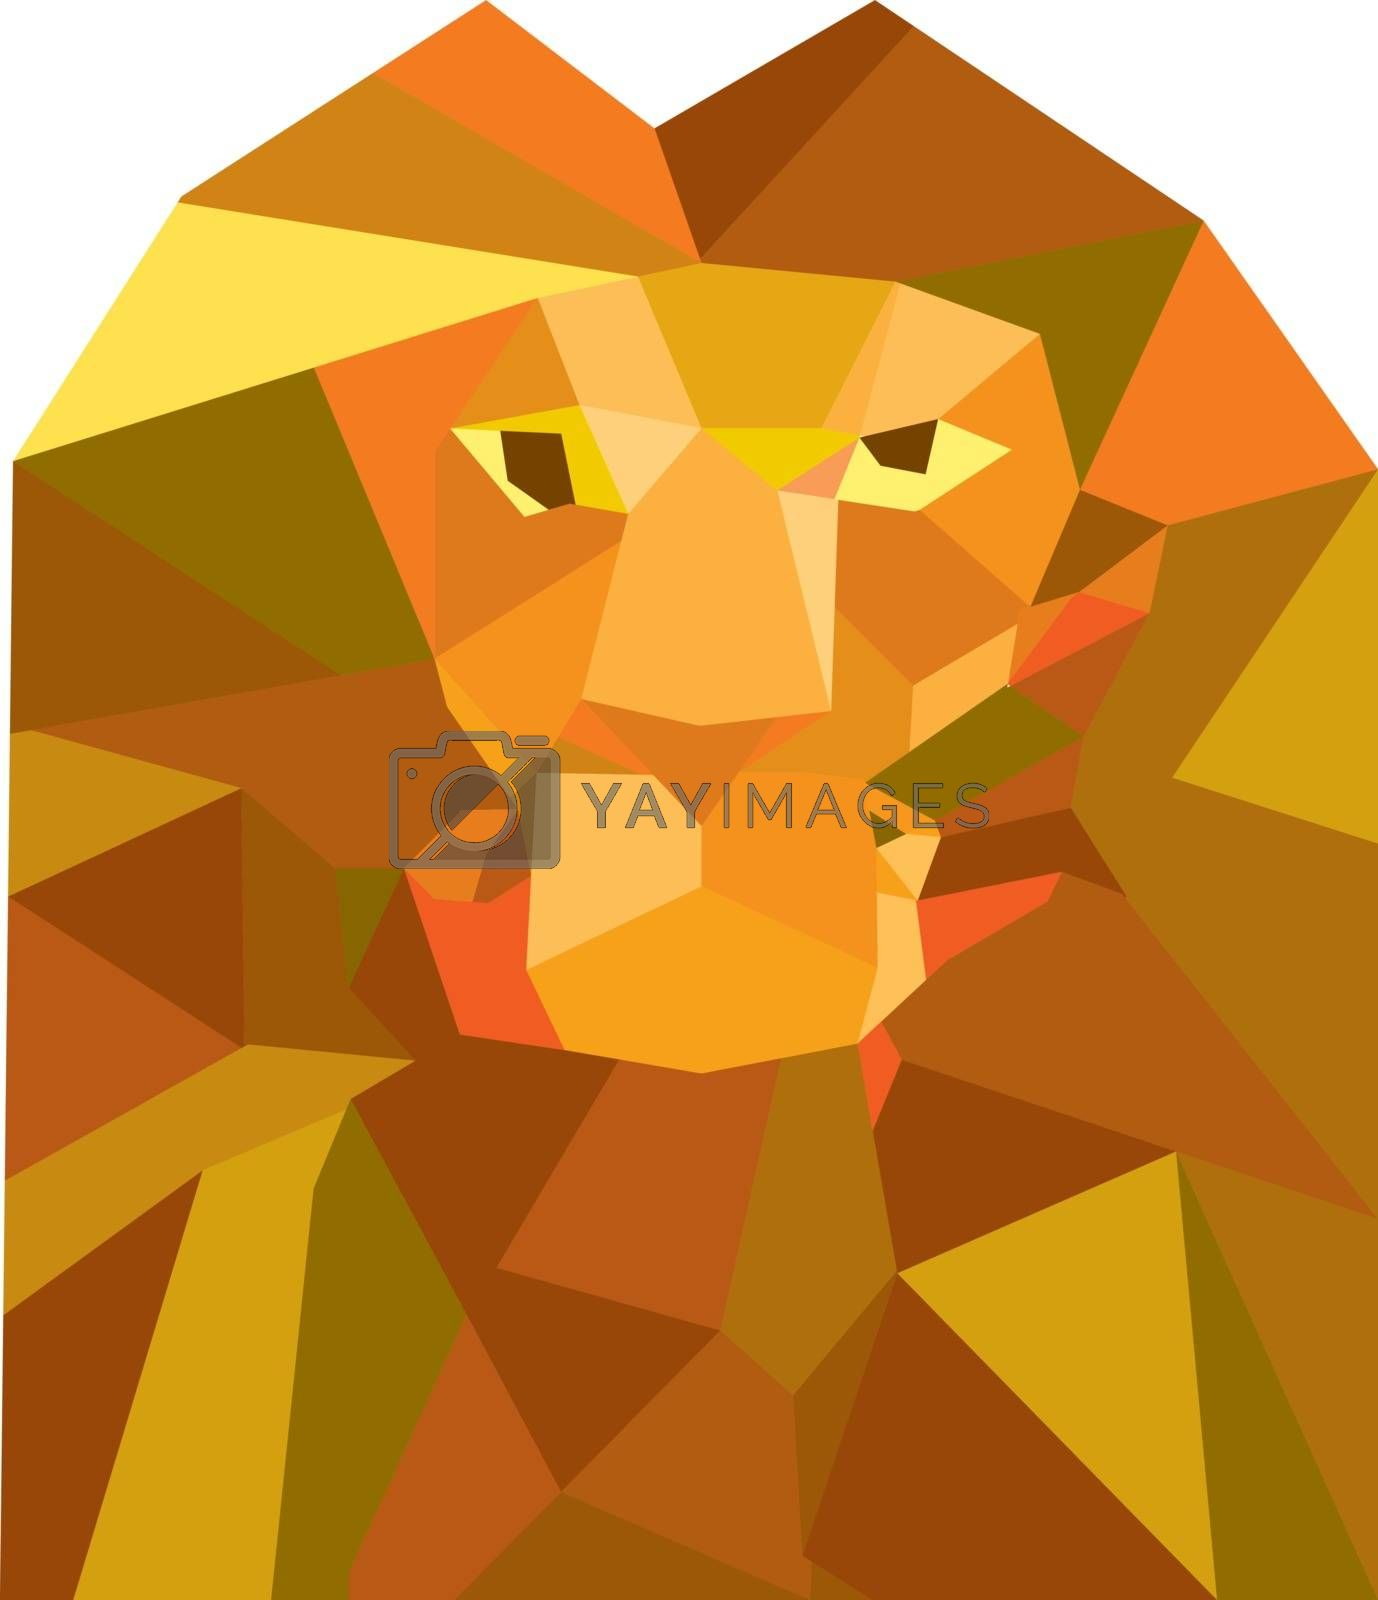 Low polygon style illustration of a lion big cat head viewed from front set on isolated white background.